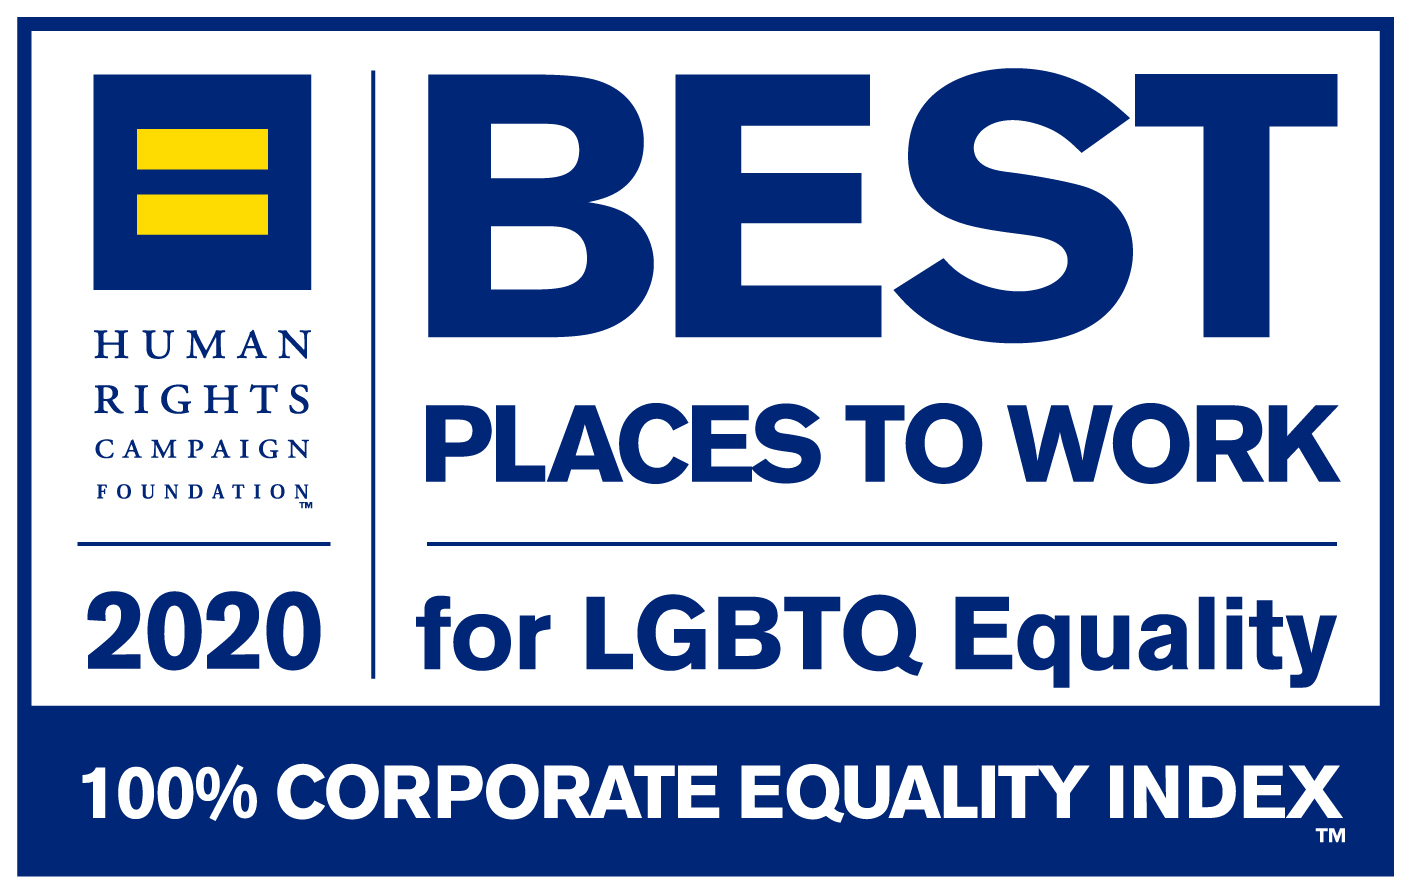 Thompson Hine has a 100% Corporate Equality Index